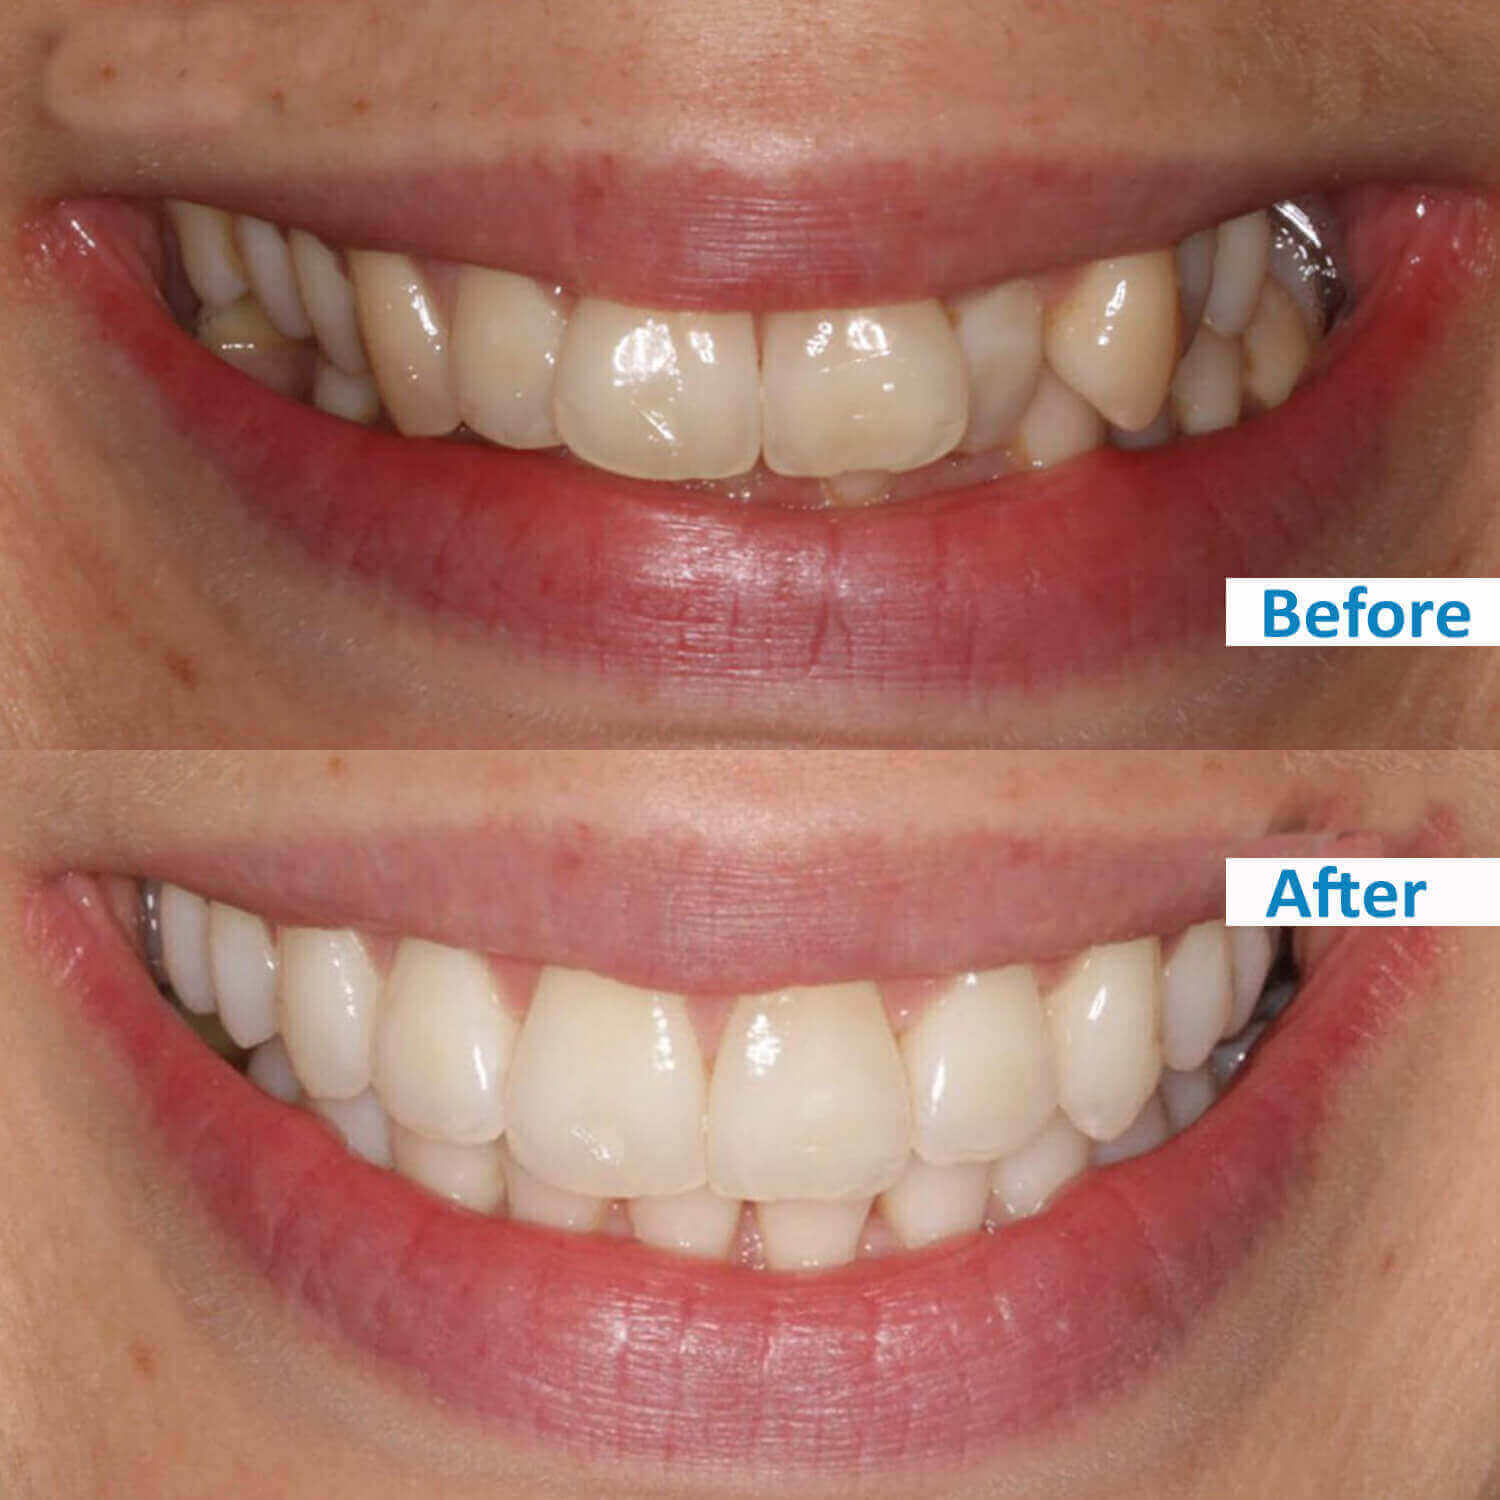 ensmile patient's before and after 6